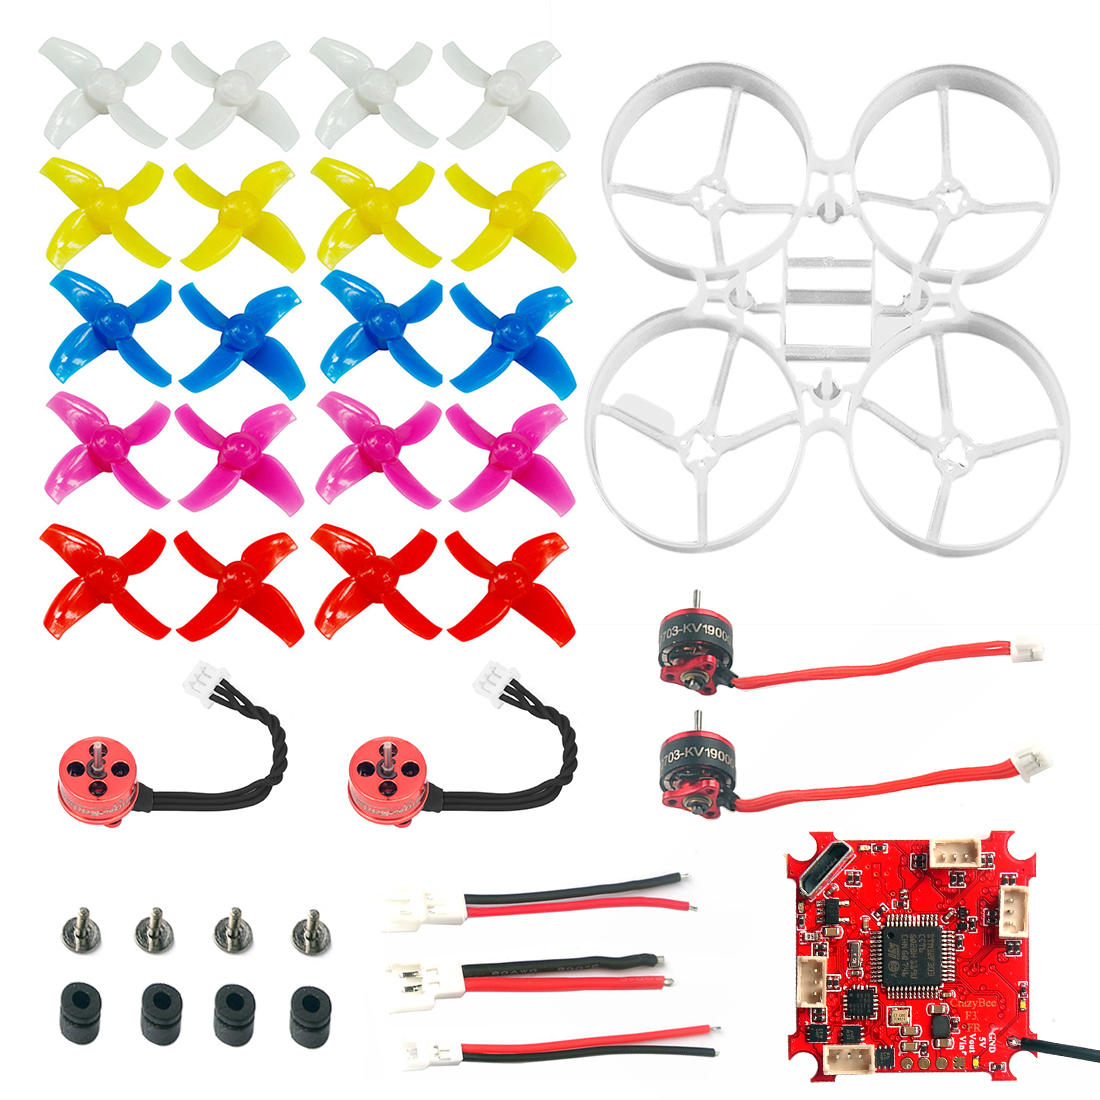 75mm Indoor Brushless Whoop Racer Drone Combo Kit Mini Frame Kit & Crazybee F3 FC ESC & SE0703 Motor & 40mm 4-Blades Propeller цены